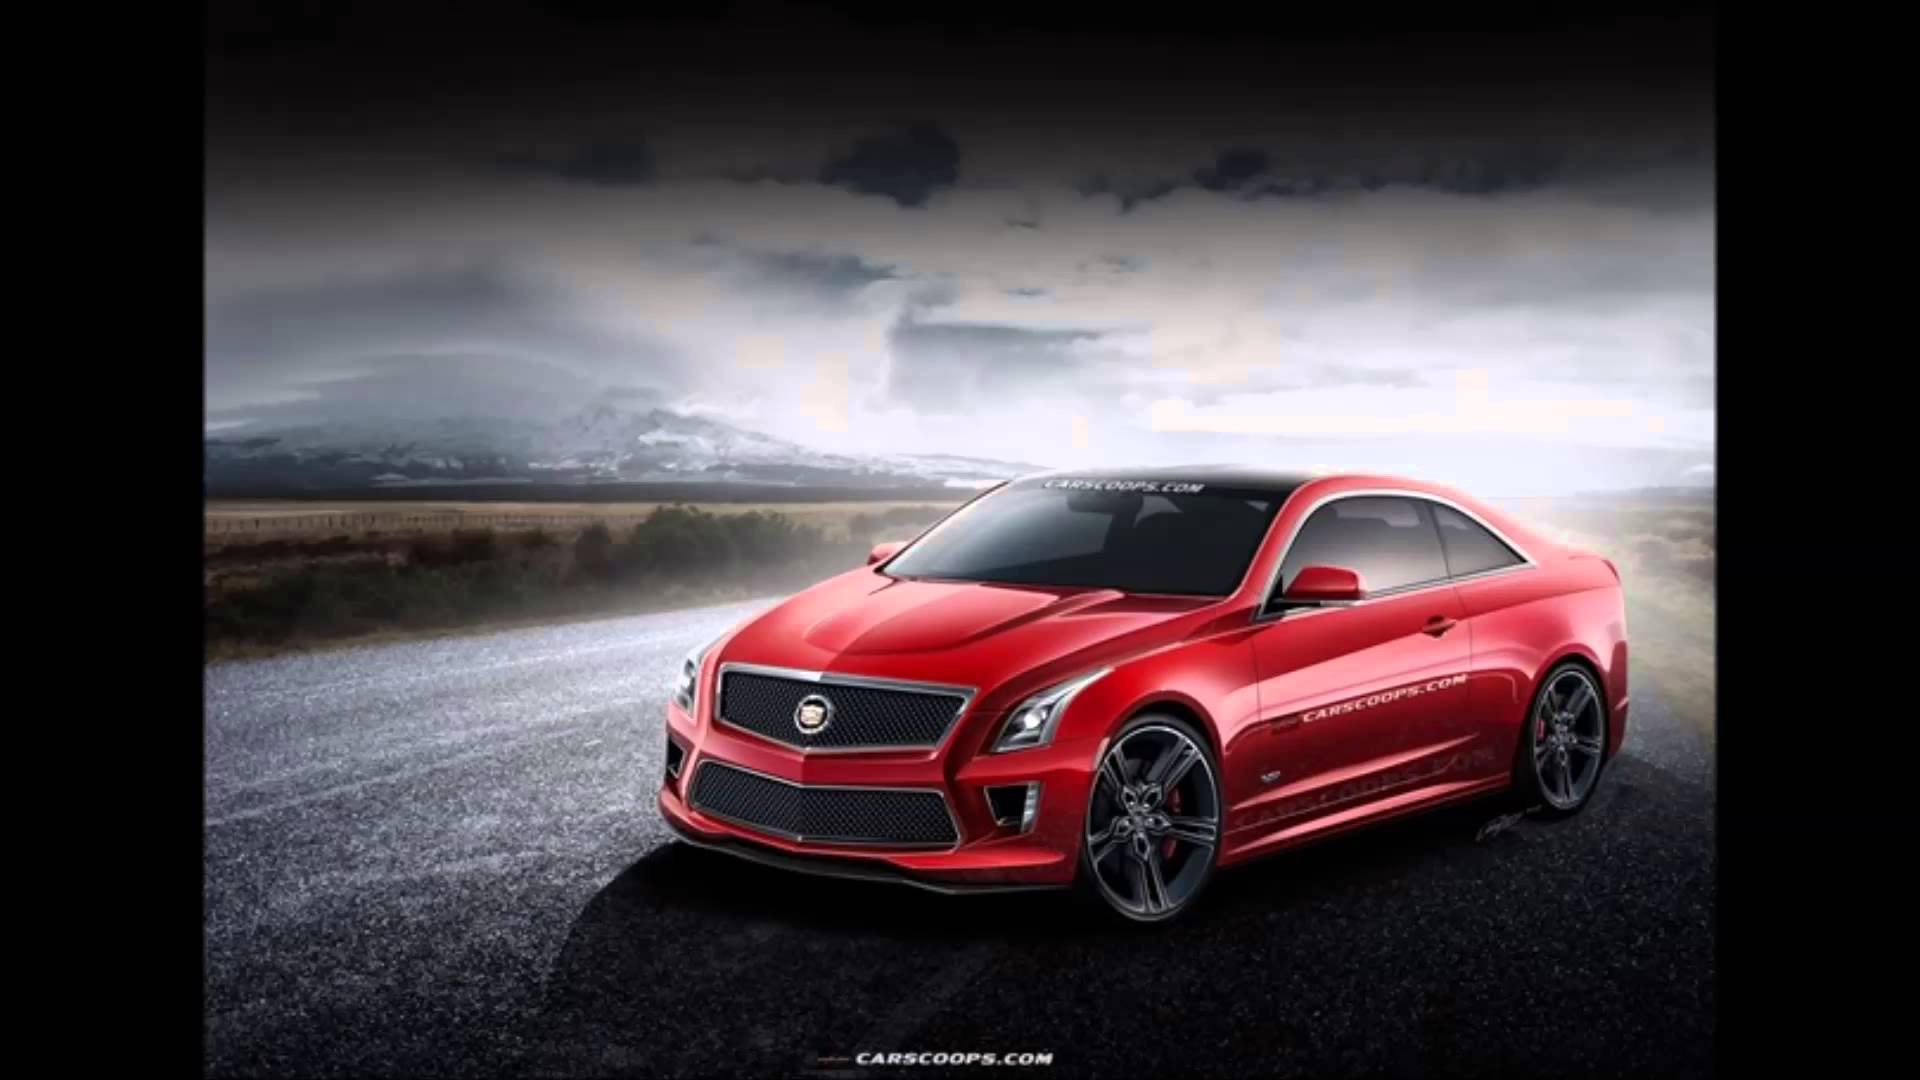 2015 Cadillac Cts-v Coupe #14